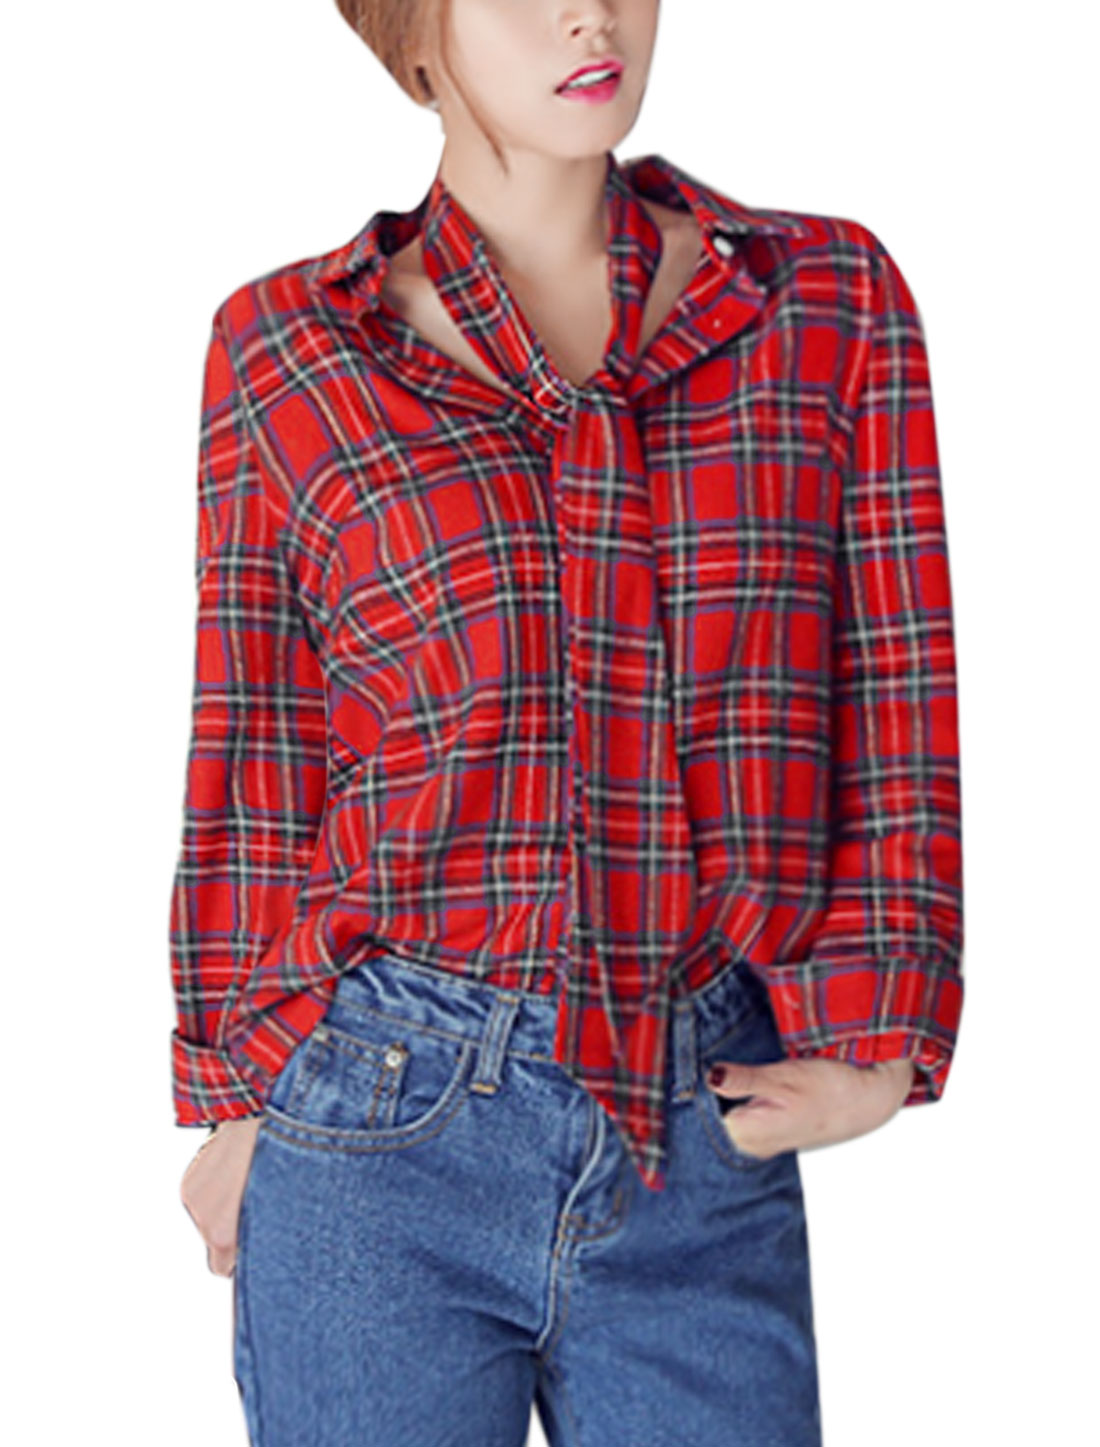 Women Point Collar Long Sleeves Single Breasted Plaids Shirt w Bowtie Red XS